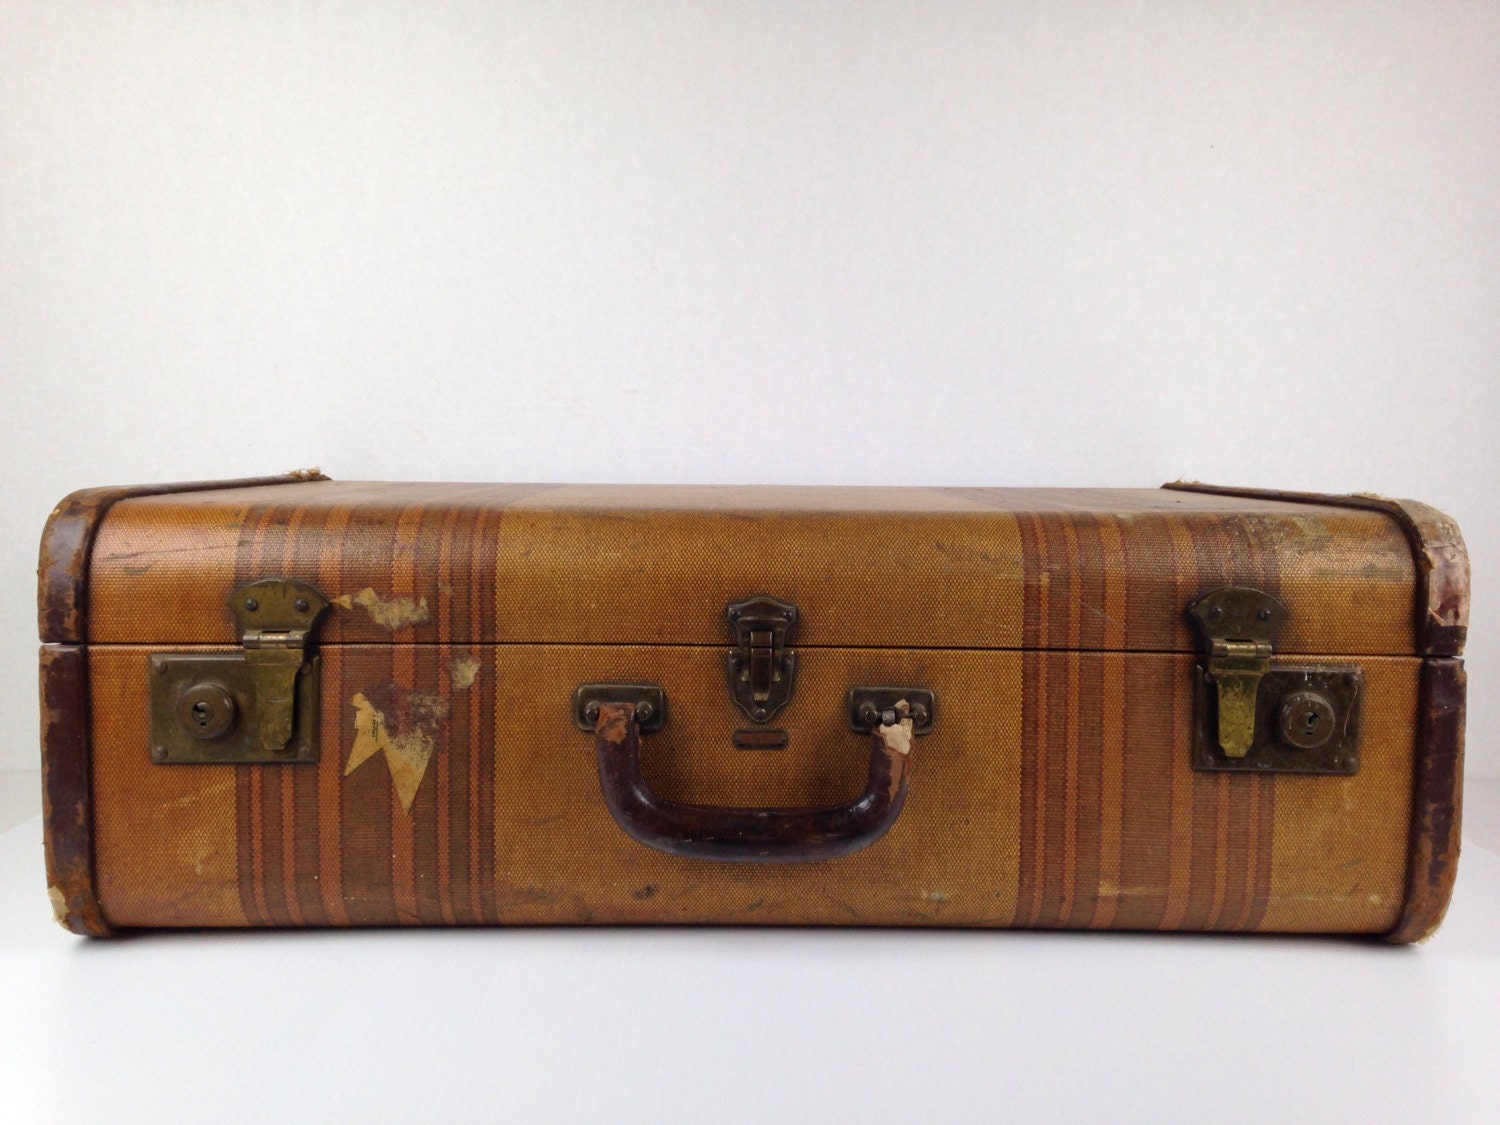 Vintage suitcase vintage 1940s luggage suitcase tweed suitcase - Vintage suitcase ...